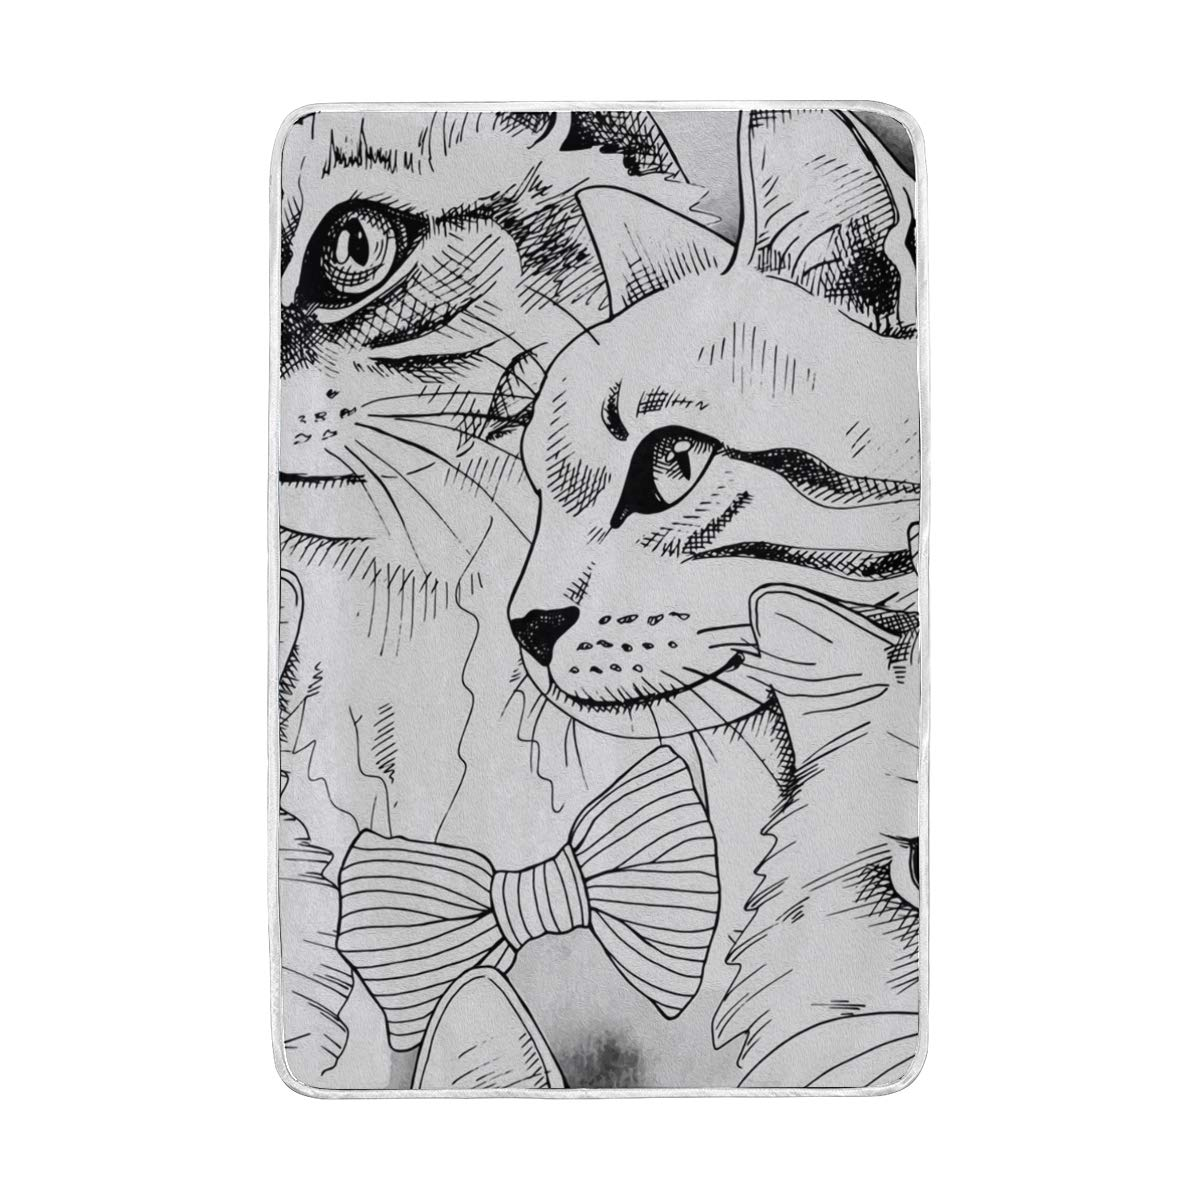 Amazon com loigeidq soft throw blanket cat sketch n draw blankets for nap couch bed kids adults 60 x 90 inch home kitchen